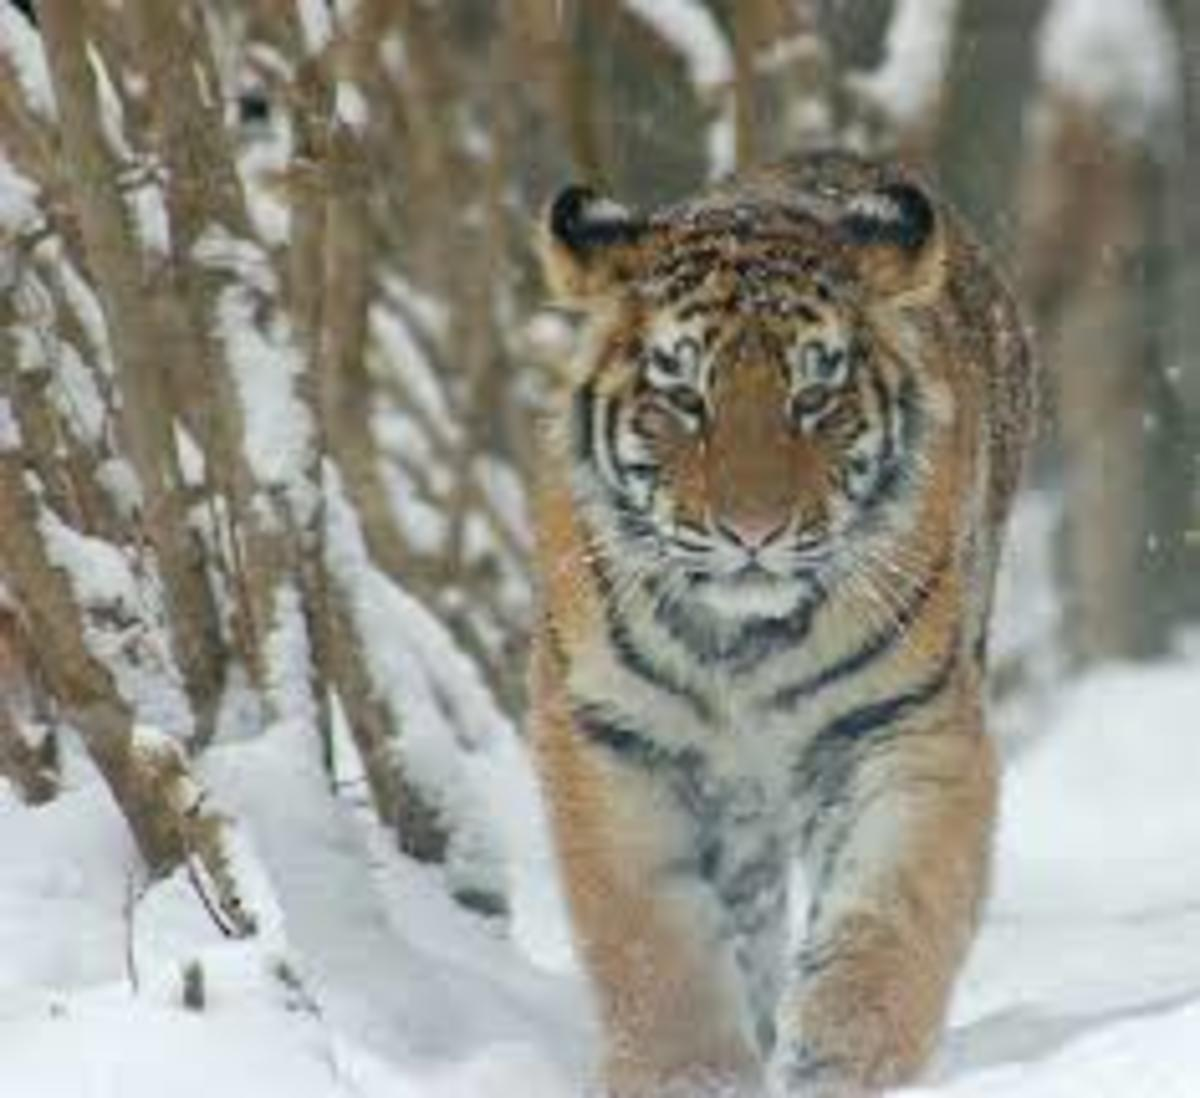 An Amur Tiger also known more commonly as a Siberian Tiger.